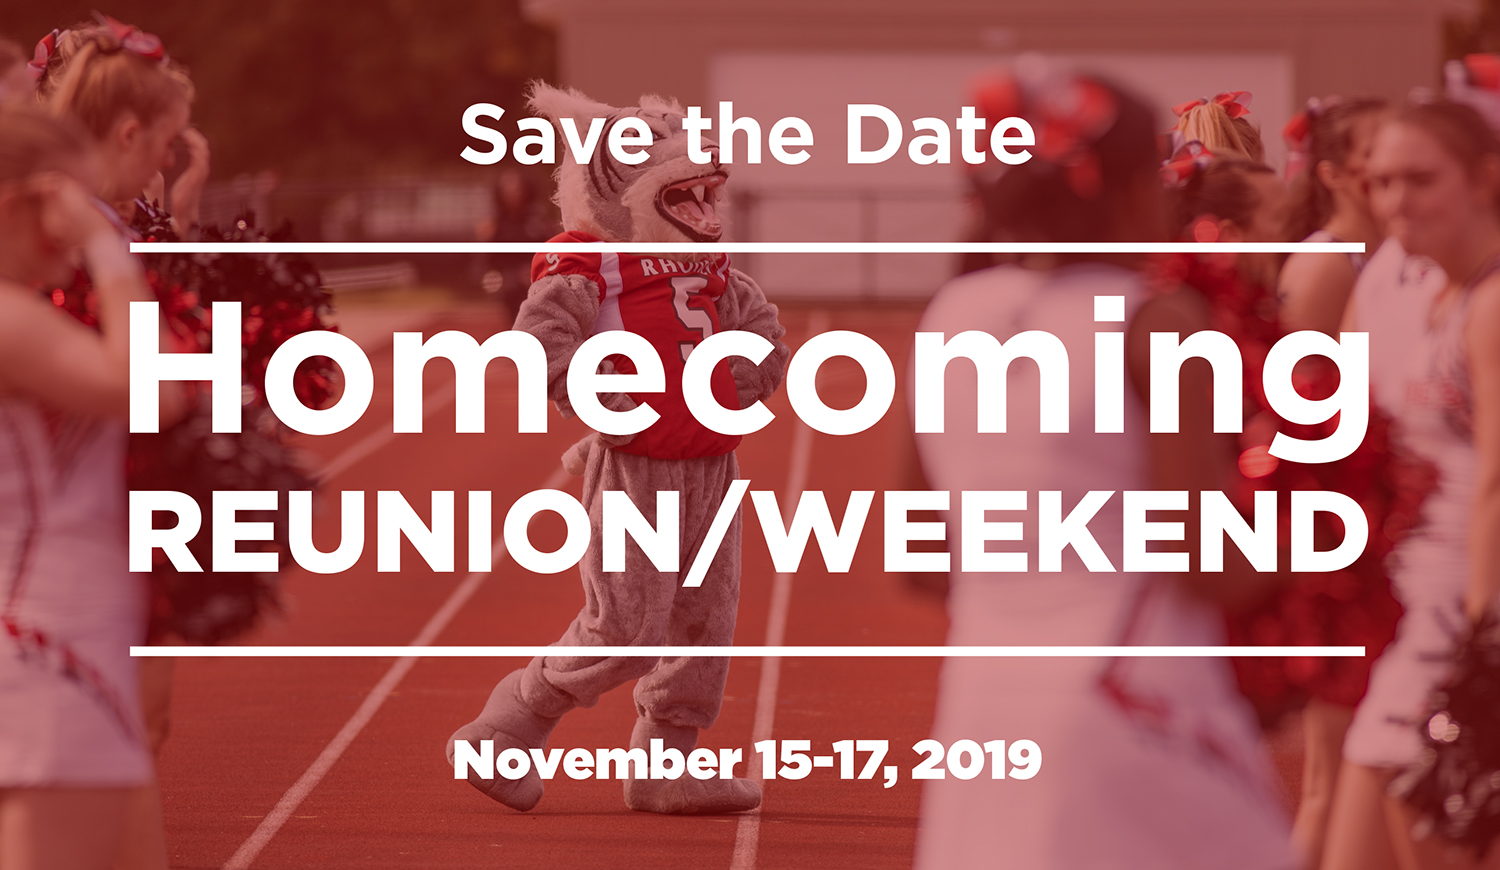 Homecoming_2019_Save_the_Date.jpg